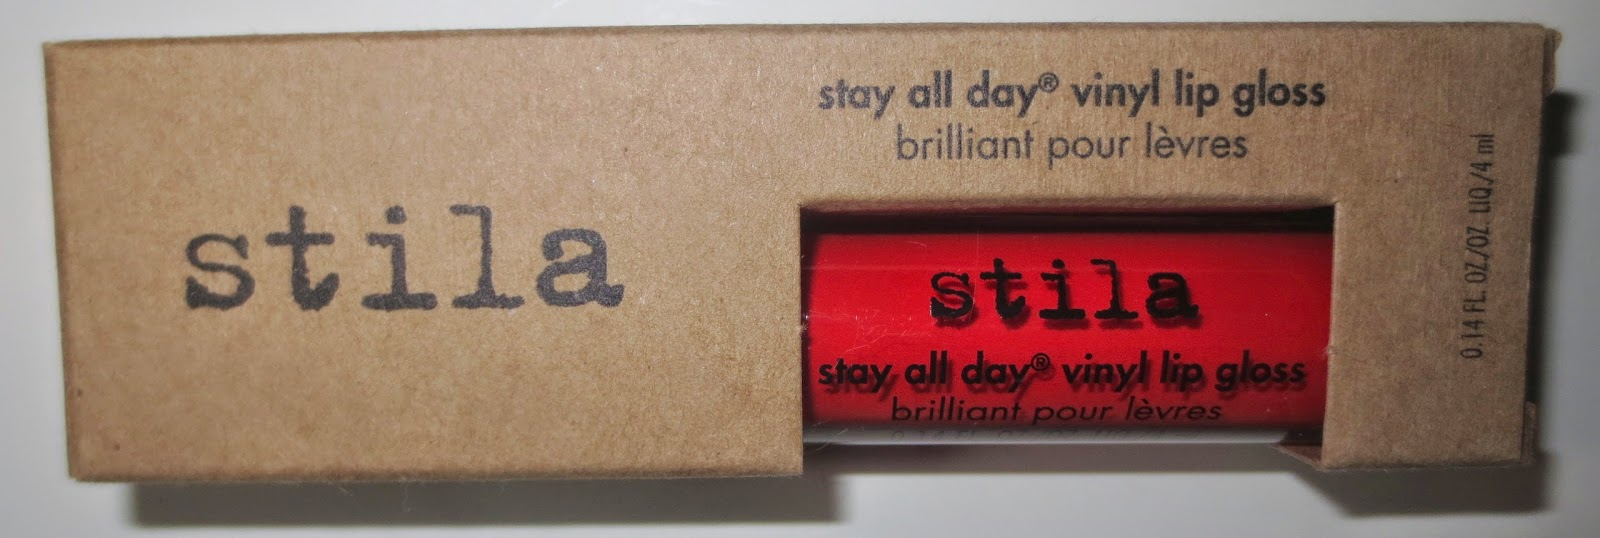 Stila Stay All Day Vinyl Lip Gloss in Poppy Vinyl Packaging